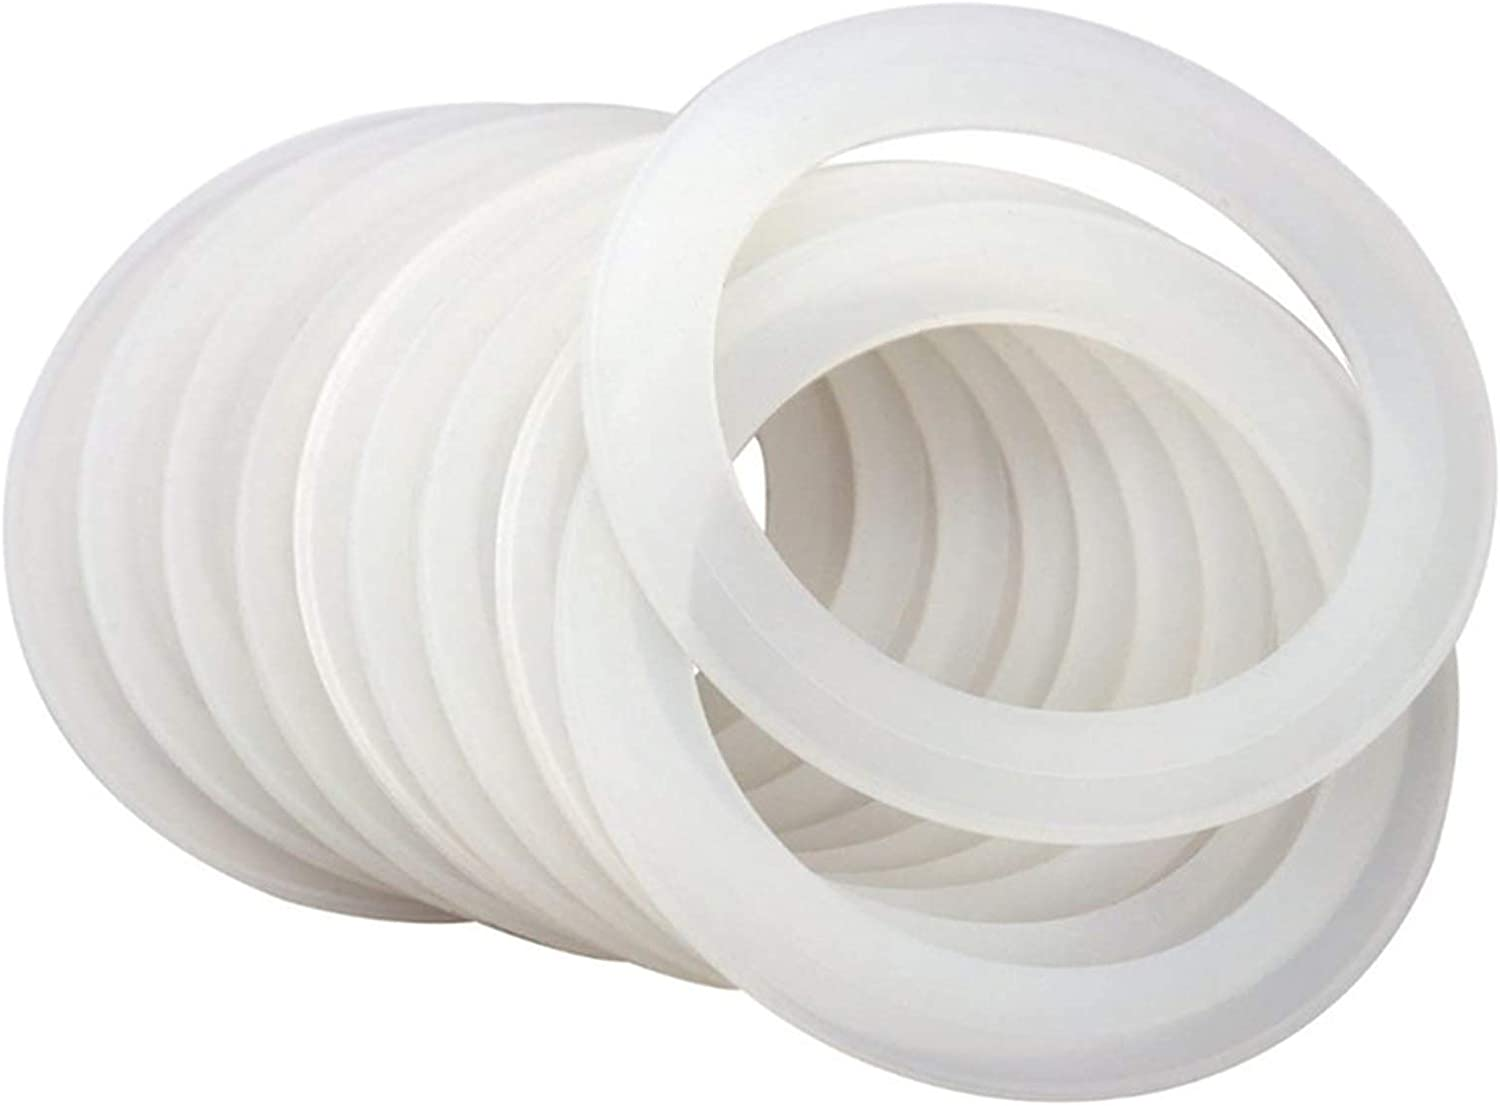 FAMKIT 10Pcs Sealing Rings Reusable Gaskets Silicone specialty shop Co Max 81% OFF